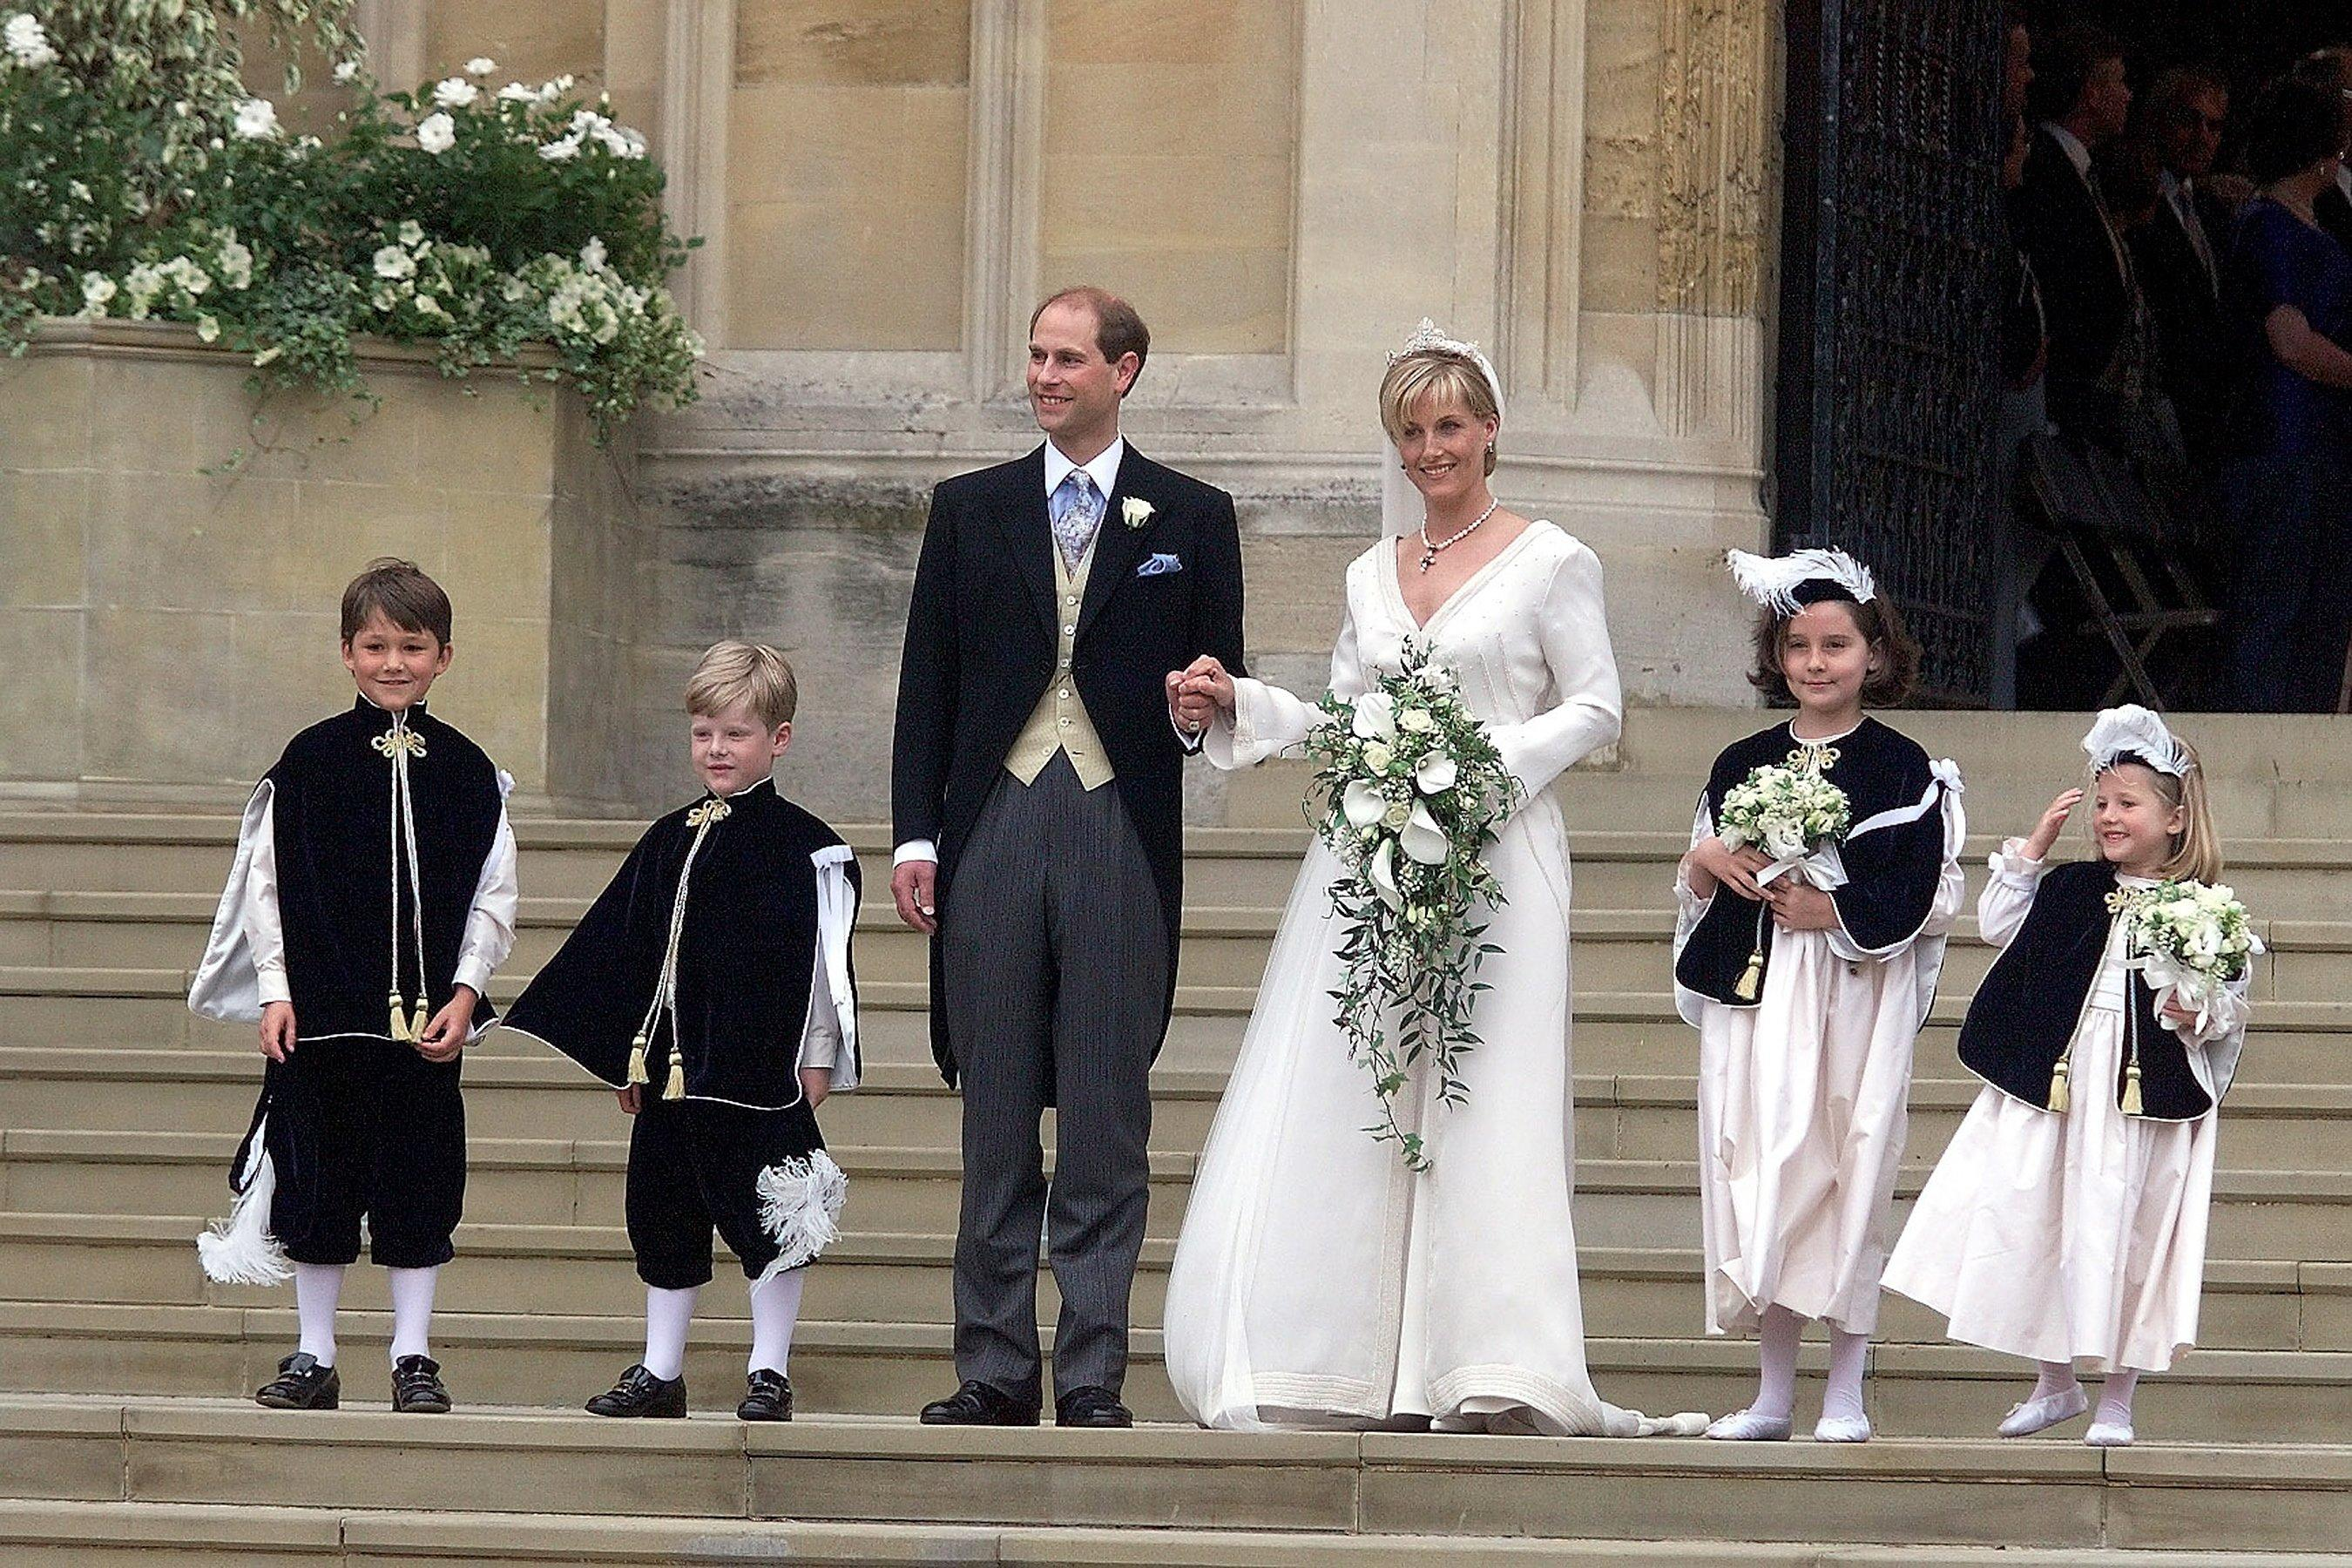 The bride wore an ivory silk organza wedding dress designed by Samantha Shaw along with a crystal beaded veil. For her tiara, Sophie wore a previously unseen piece from the Crown Jewel collection made up of four detachable diamond anthemions believed to have been taken from one of Queen Victoria's famous crowns.